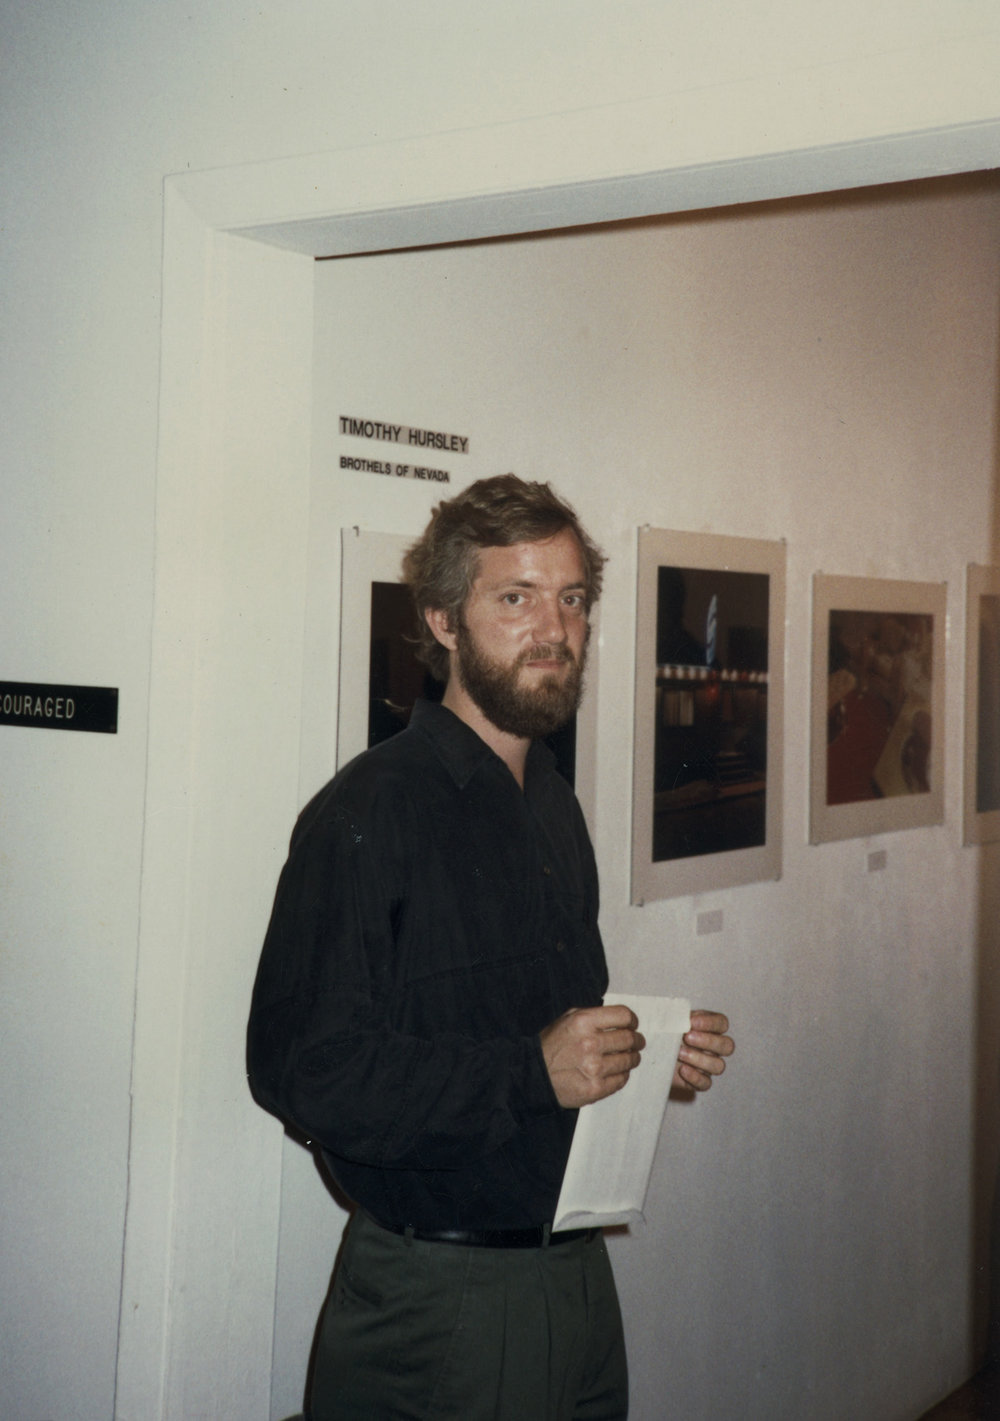 Hursley at OK Harris Gallery with Ivan Karp 1990